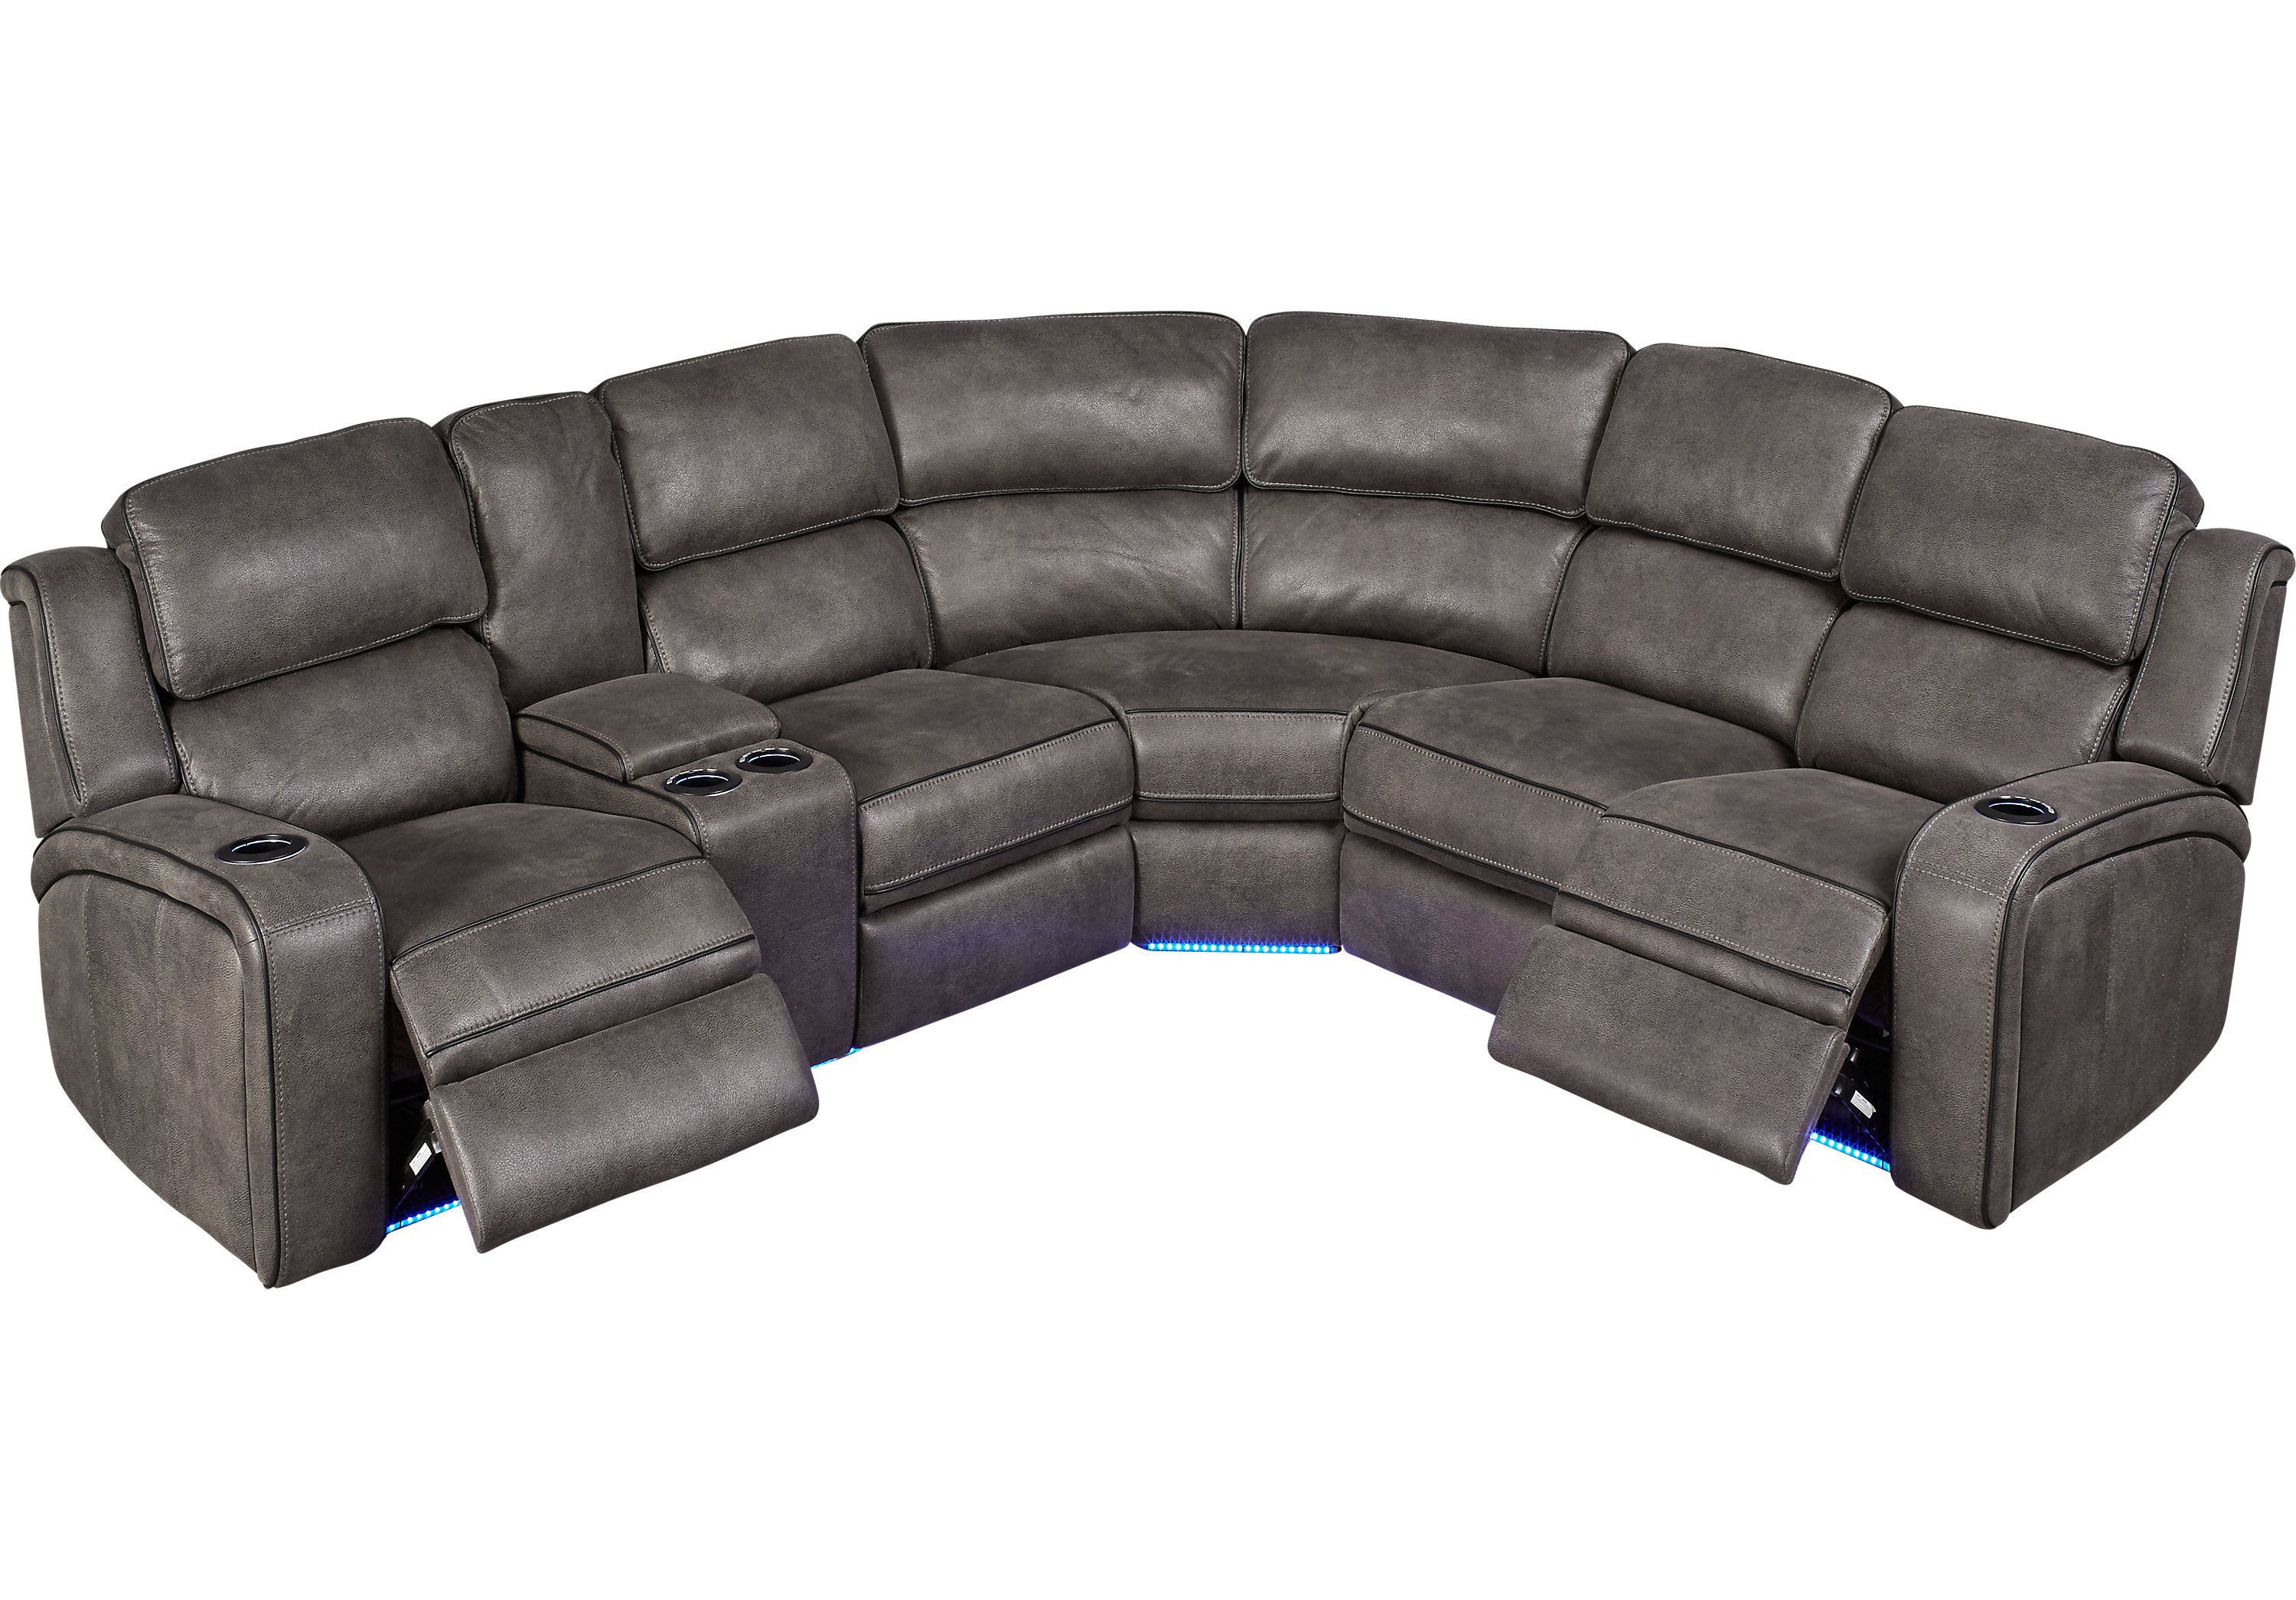 Magnificent Eastview Charcoal 3 Pc Dual Power Reclining Sectional Pdpeps Interior Chair Design Pdpepsorg